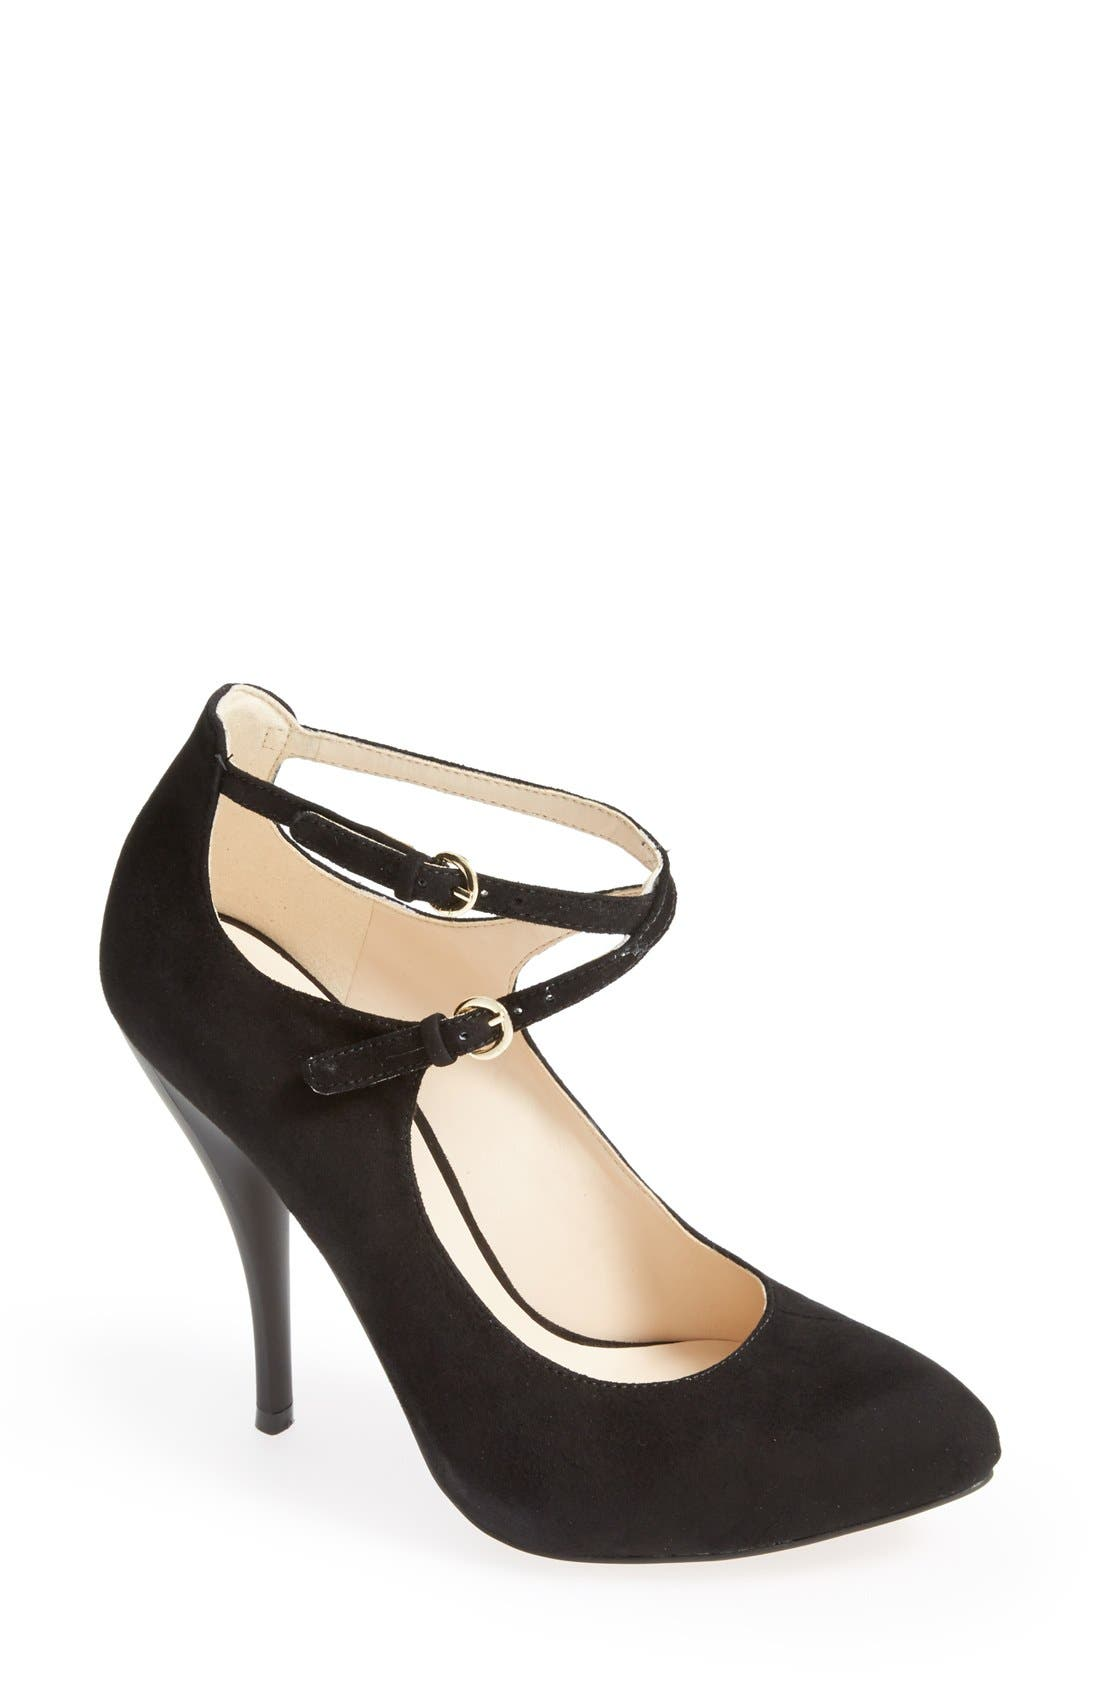 Main Image - Nine West 'Coherent' Ankle Strap Suede Pump (Women)